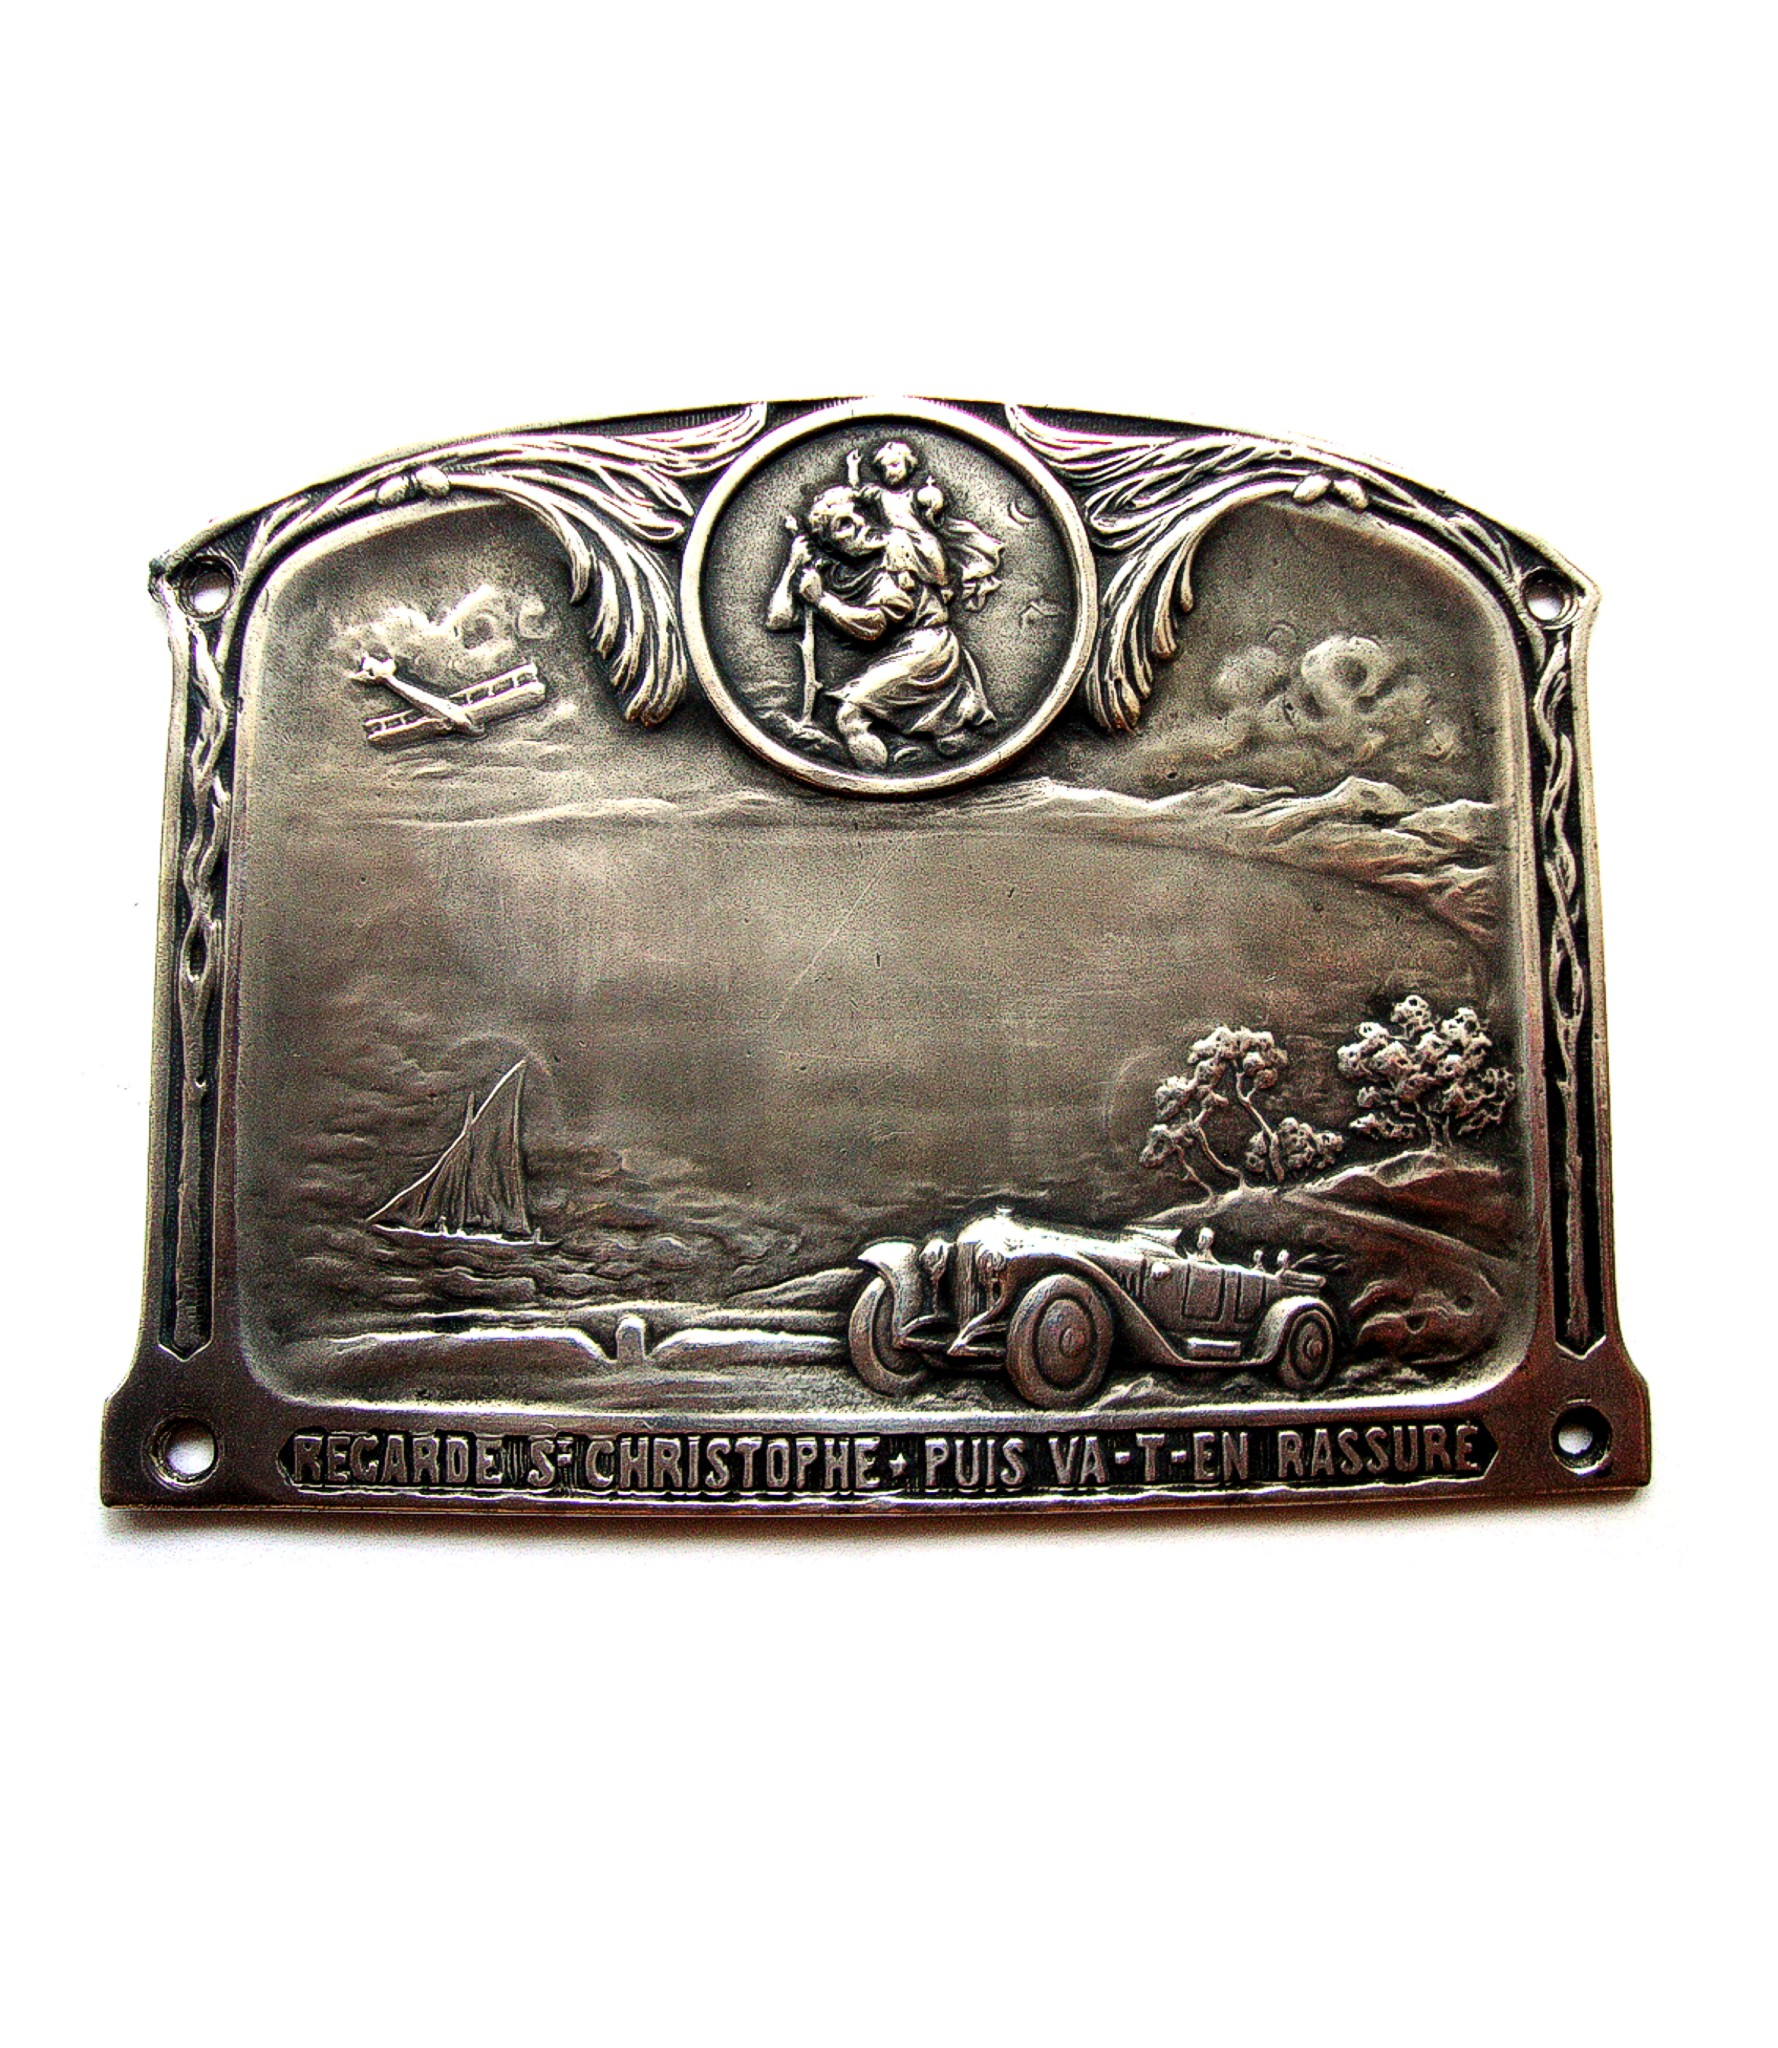 Huge St.Christopher dashboard plaque with transport vehicles engraved